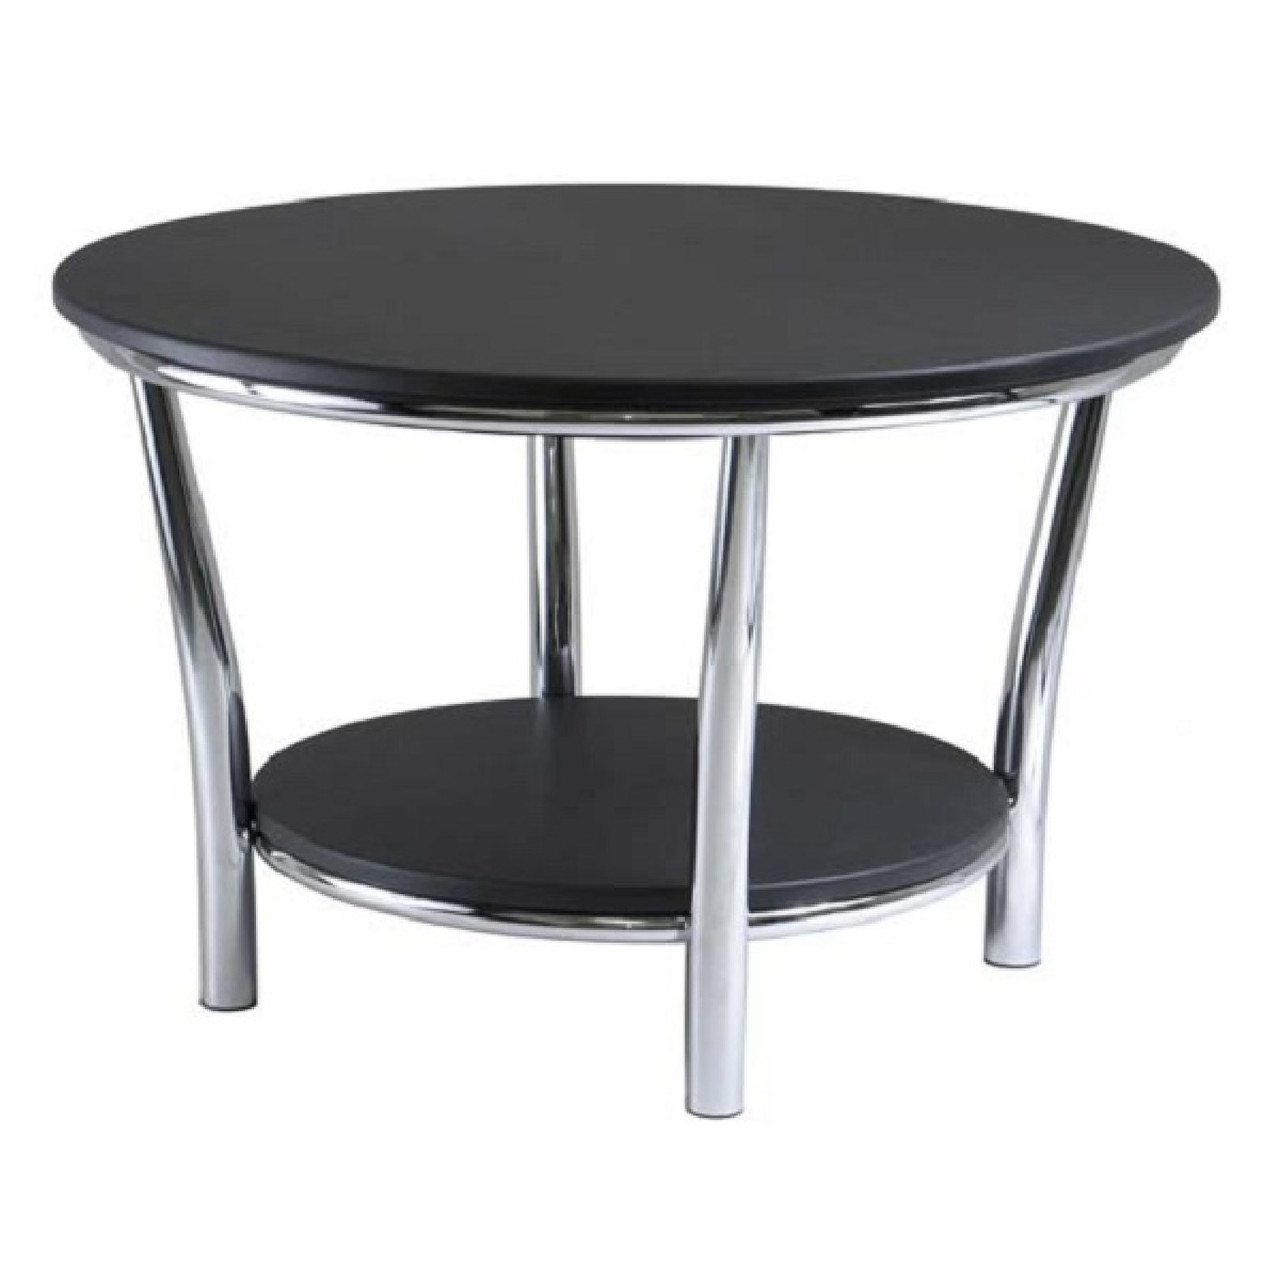 Picture of: 19 Black Silver Maya Round Wooden Coffee Table With Metal Frame Christmas Central